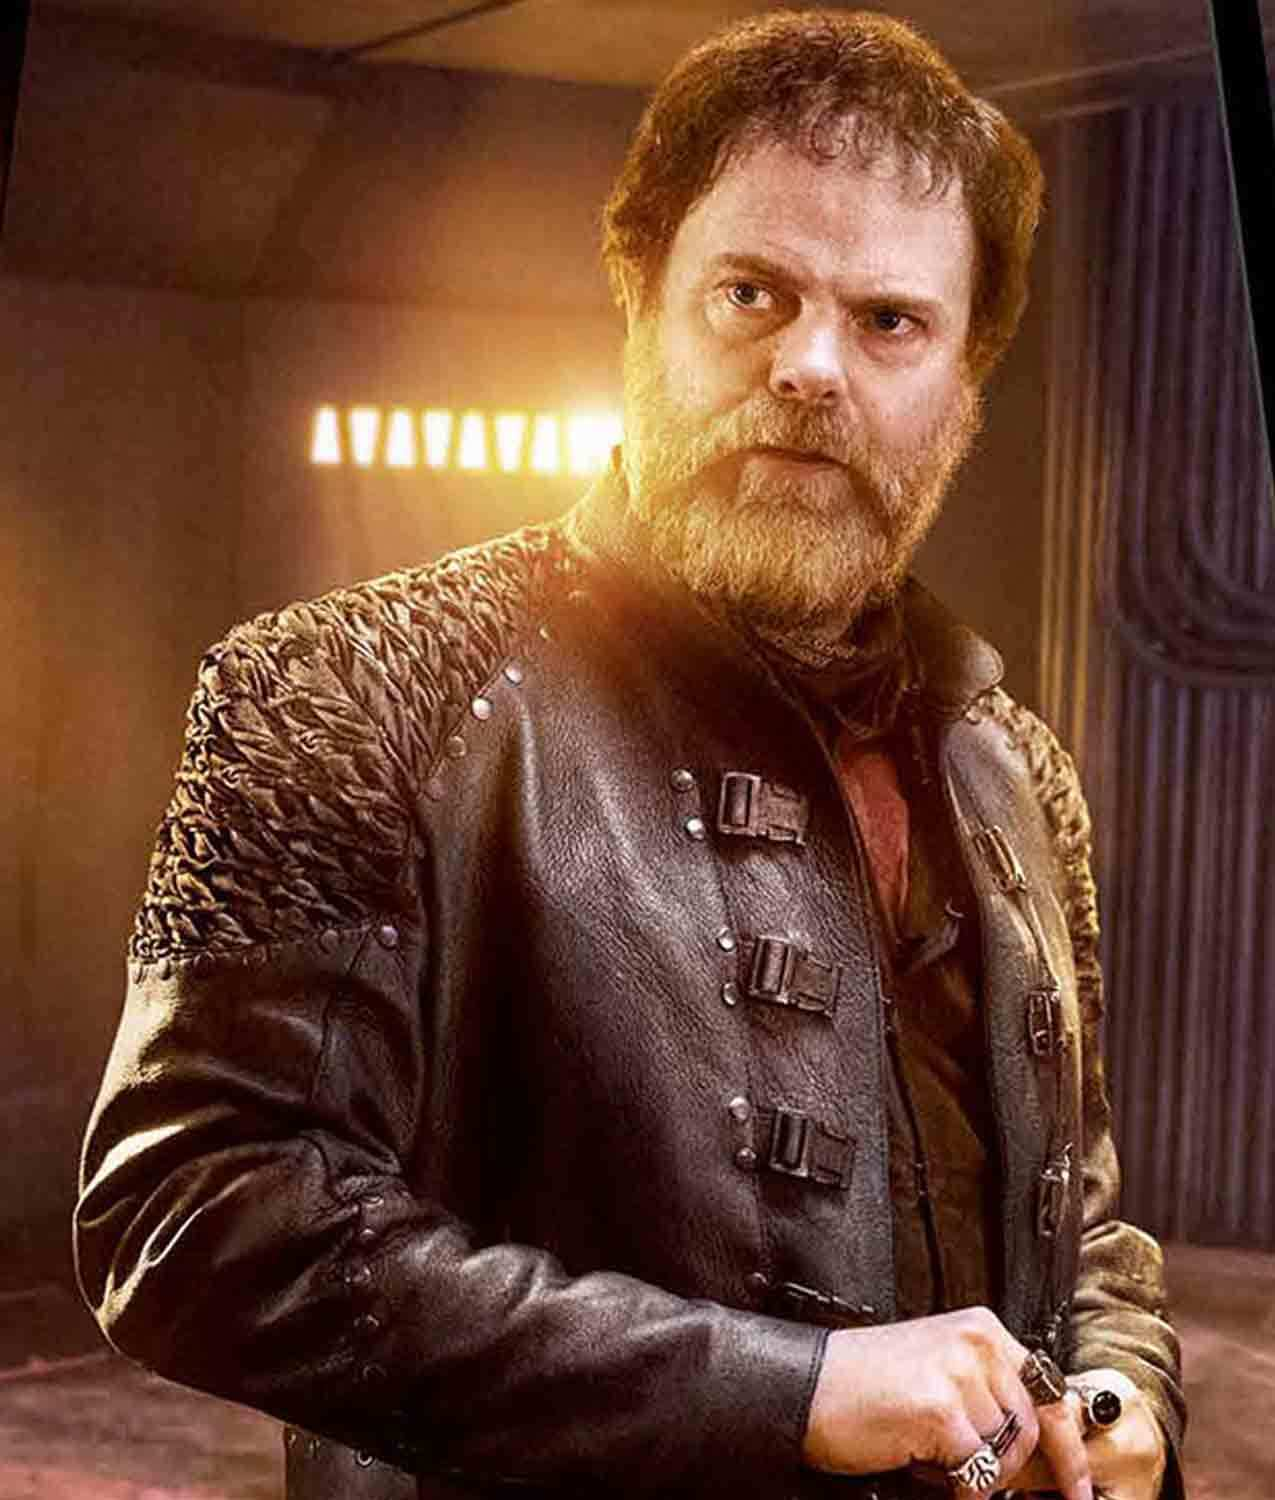 Harry Mudd in Star Trek played by Rainn Wilson